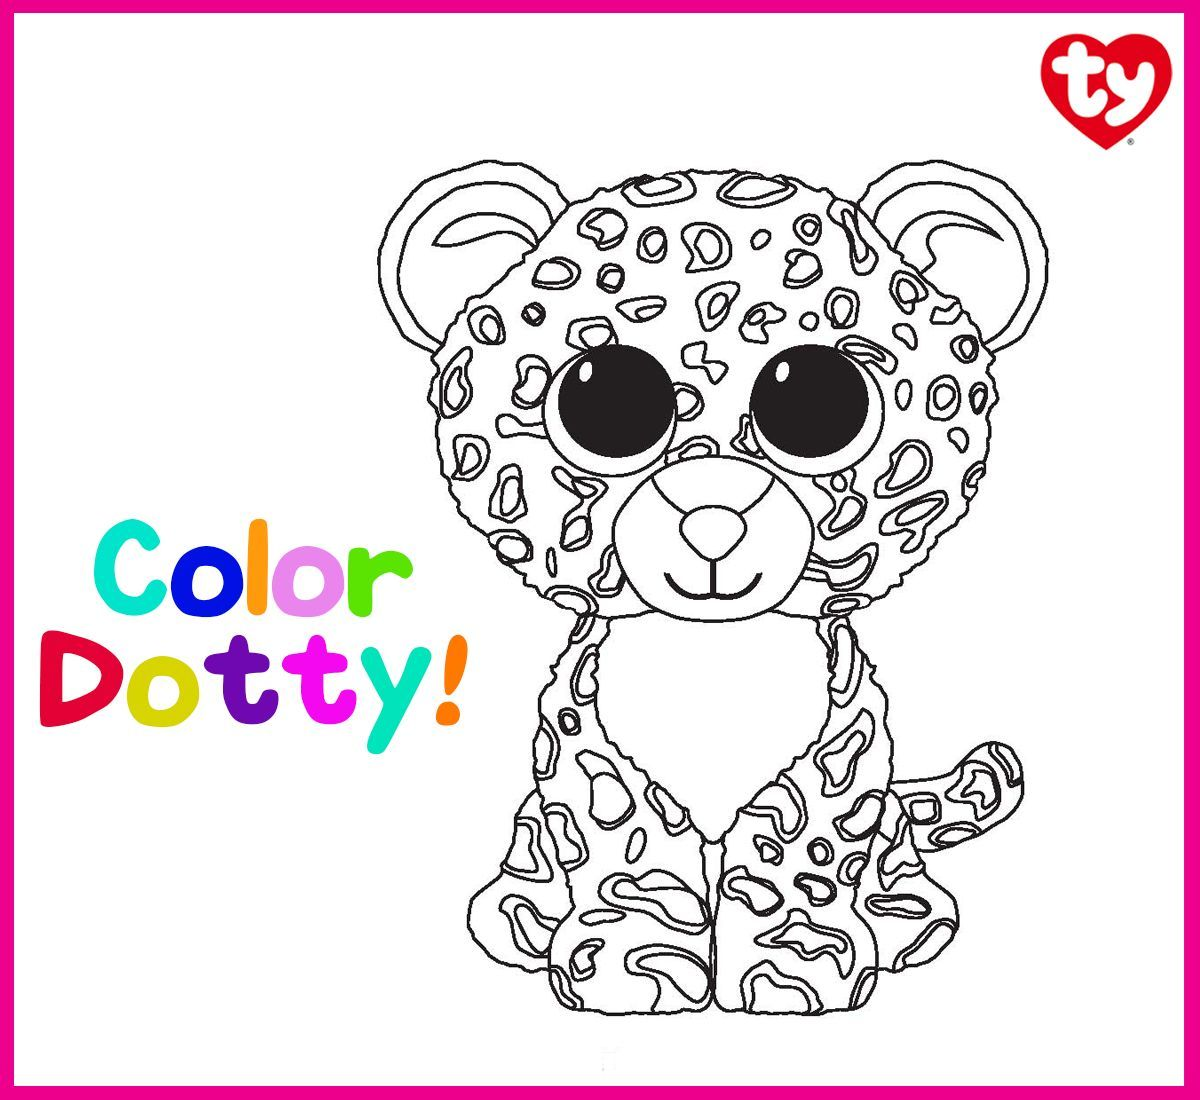 Dotty Has Lots Of Spots! Can You Help Give This Leopard